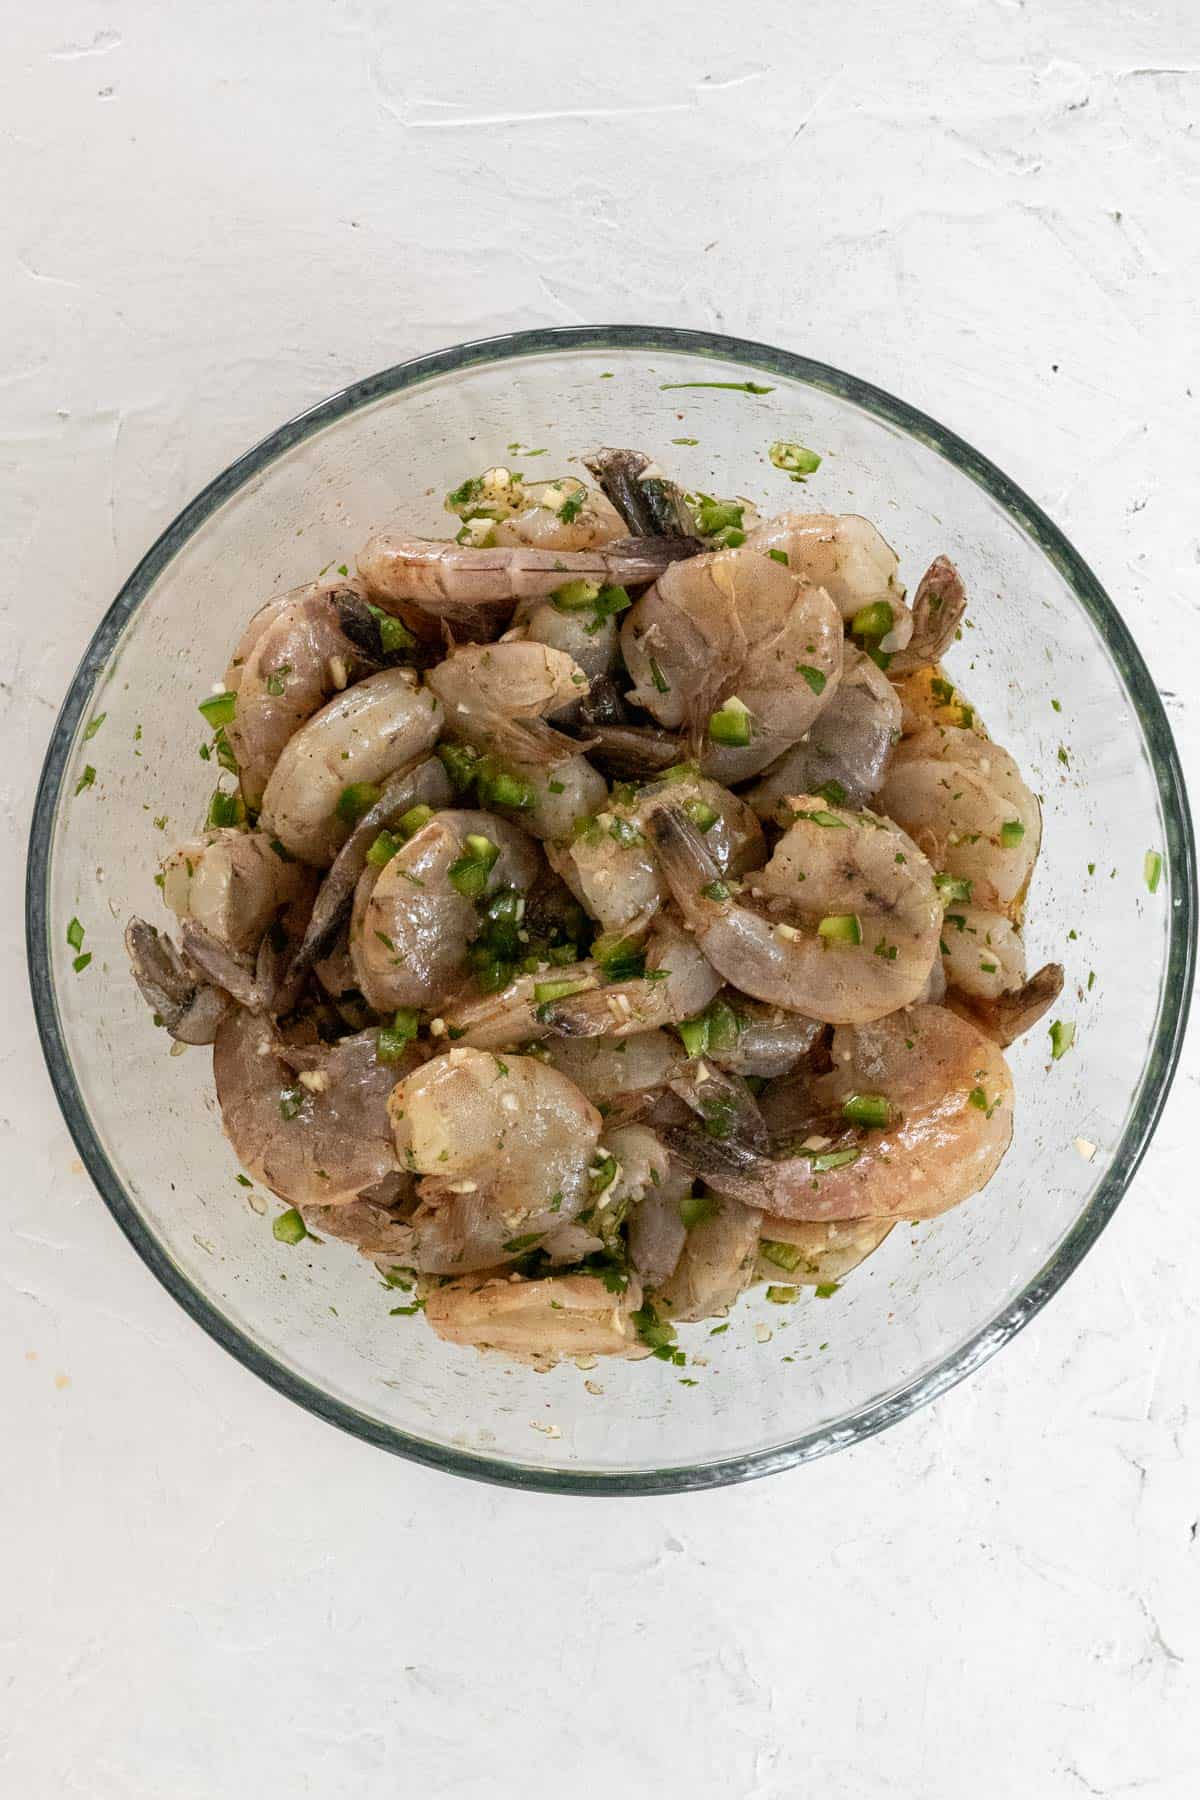 Raw shrimp mixed with the tequila lime marinade in a glass bowl.